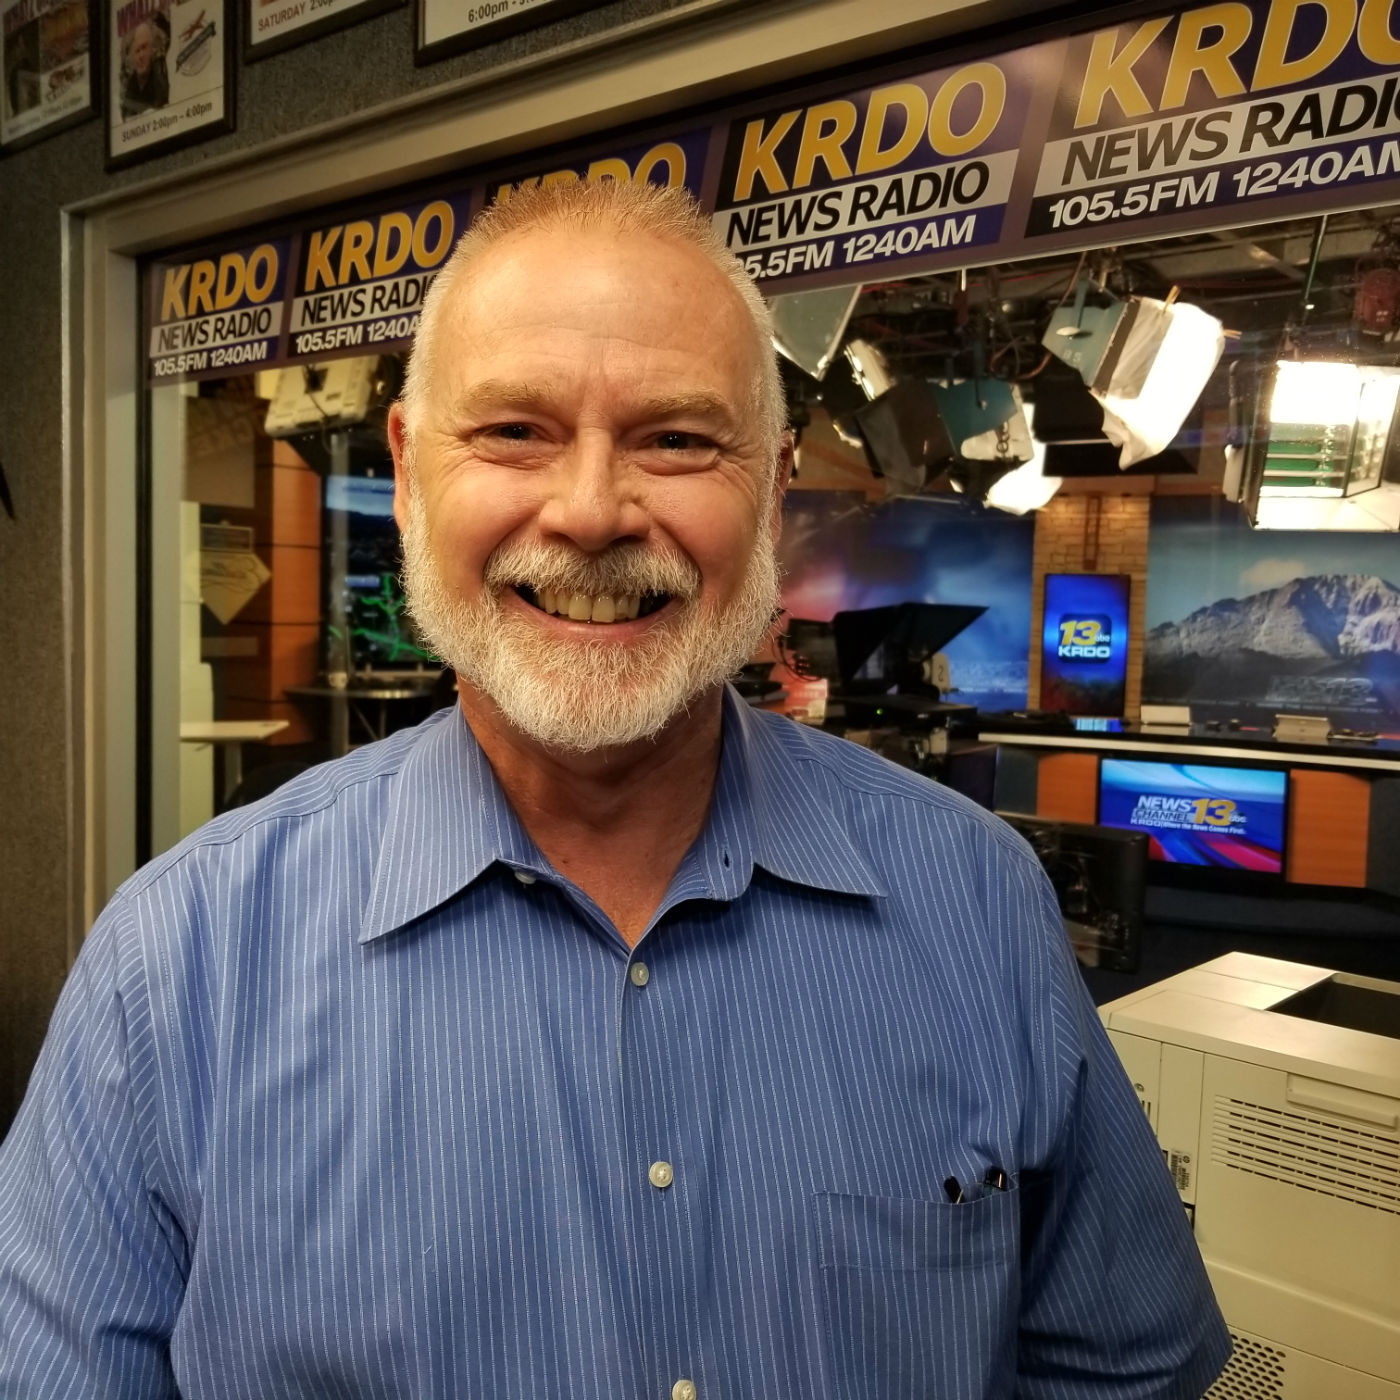 KRDO's Morning News - November 15, 2018